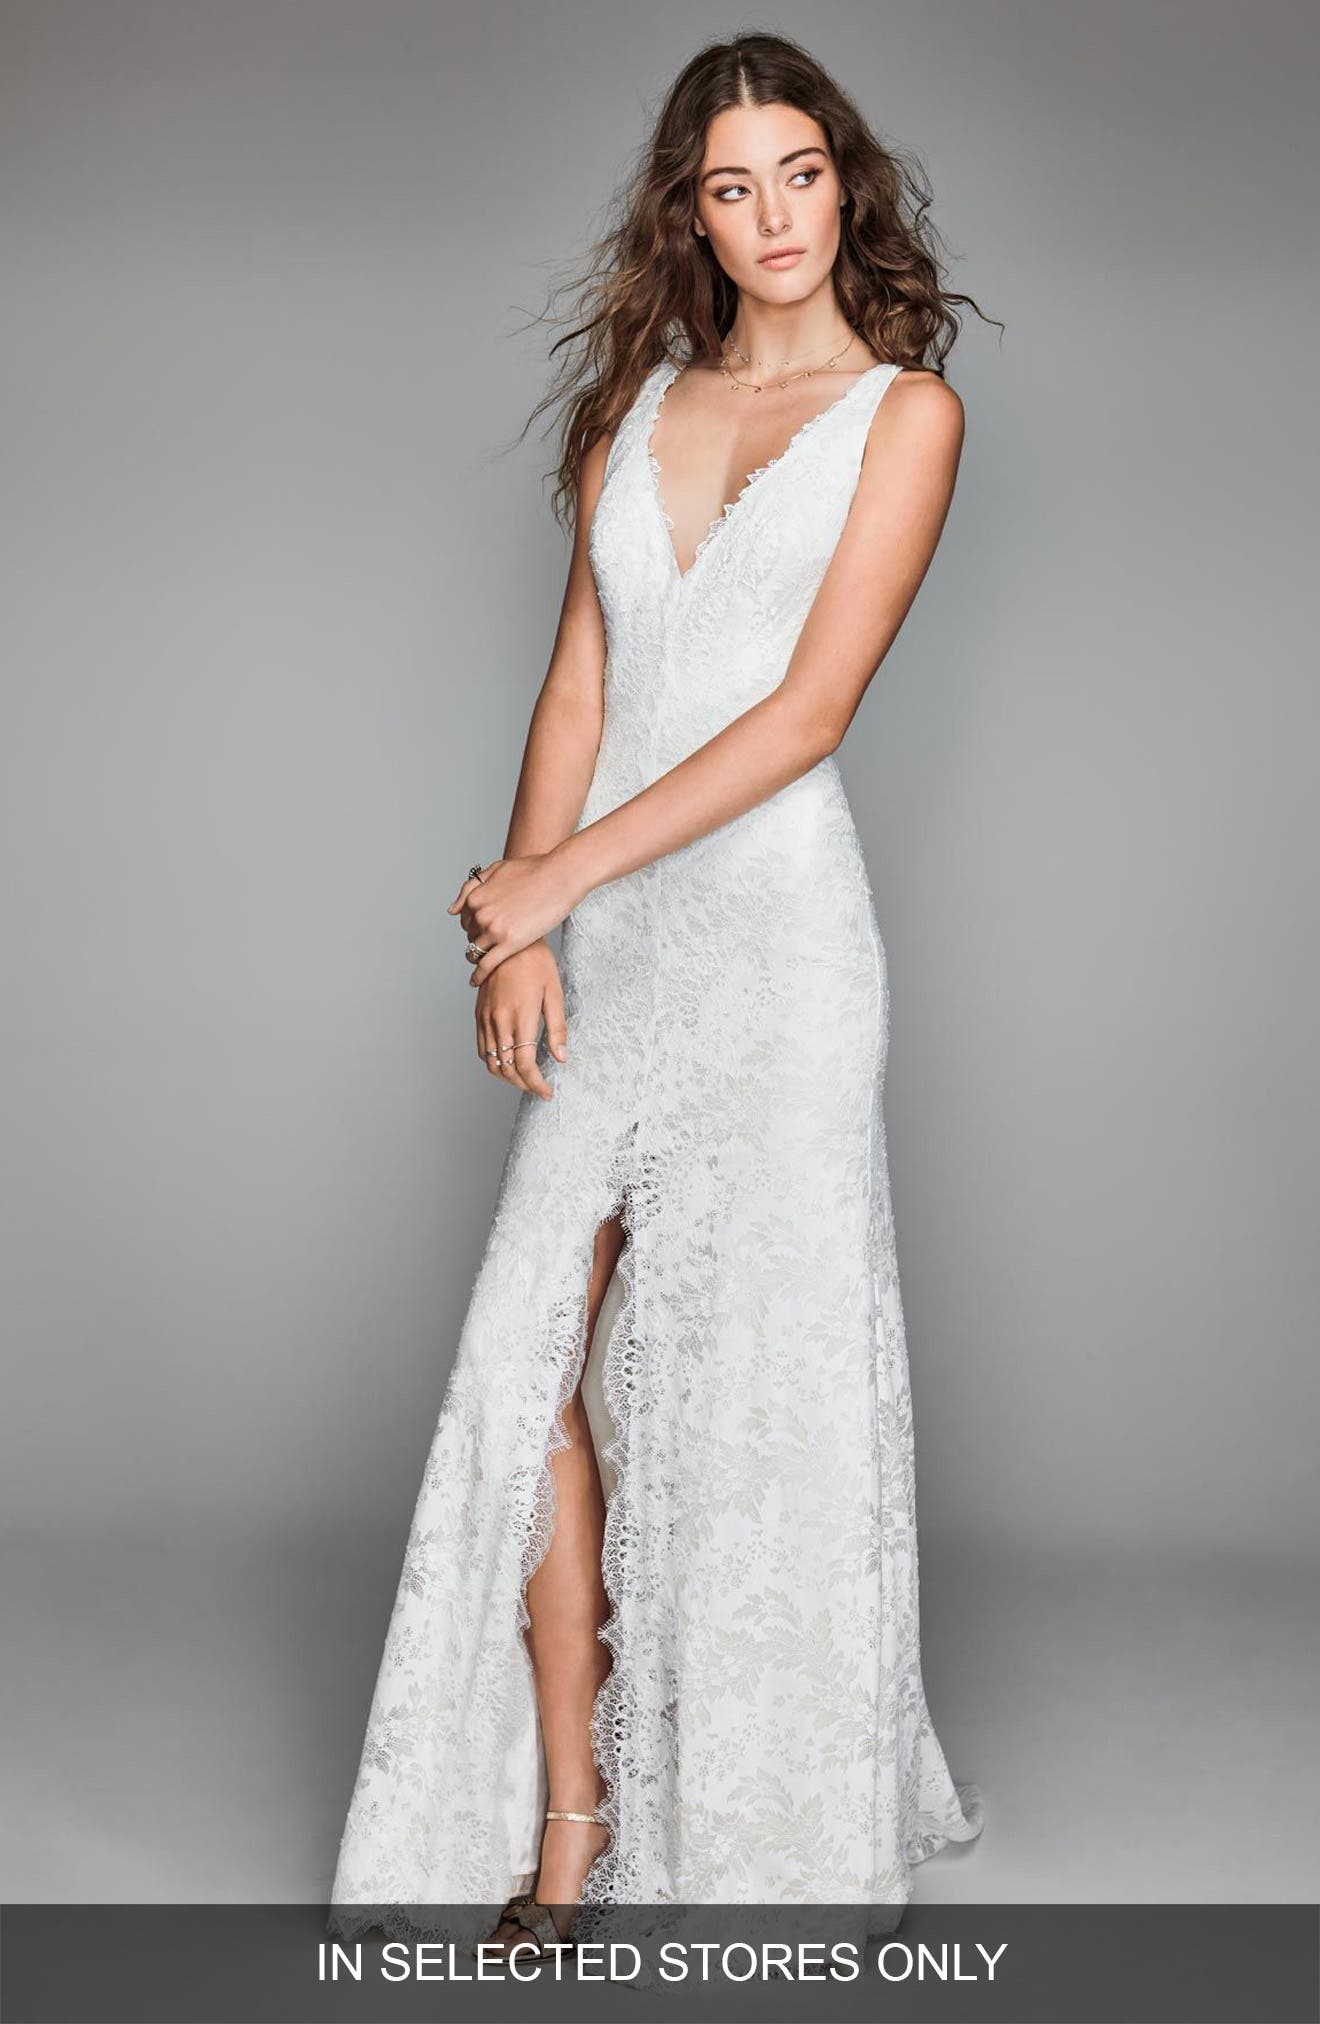 Libra Lace Sheath Gown,                             Main thumbnail 1, color,                             IVORY/ OYSTER